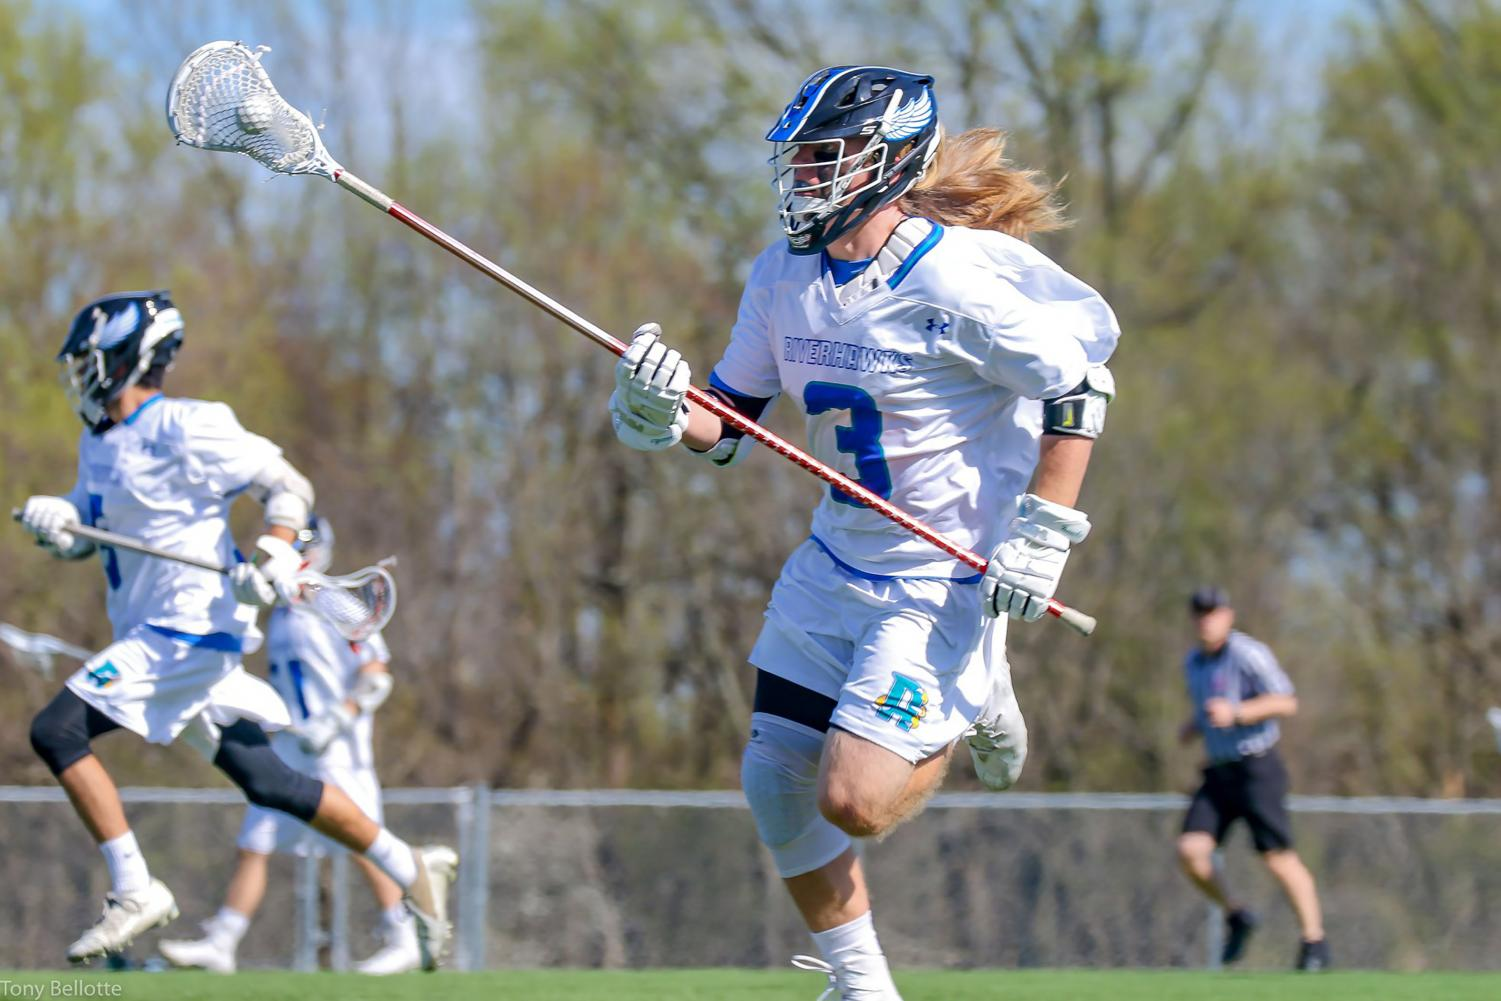 Former AACC Men's Lacrosse defender Justin Walsh says academics are important for recruitment.